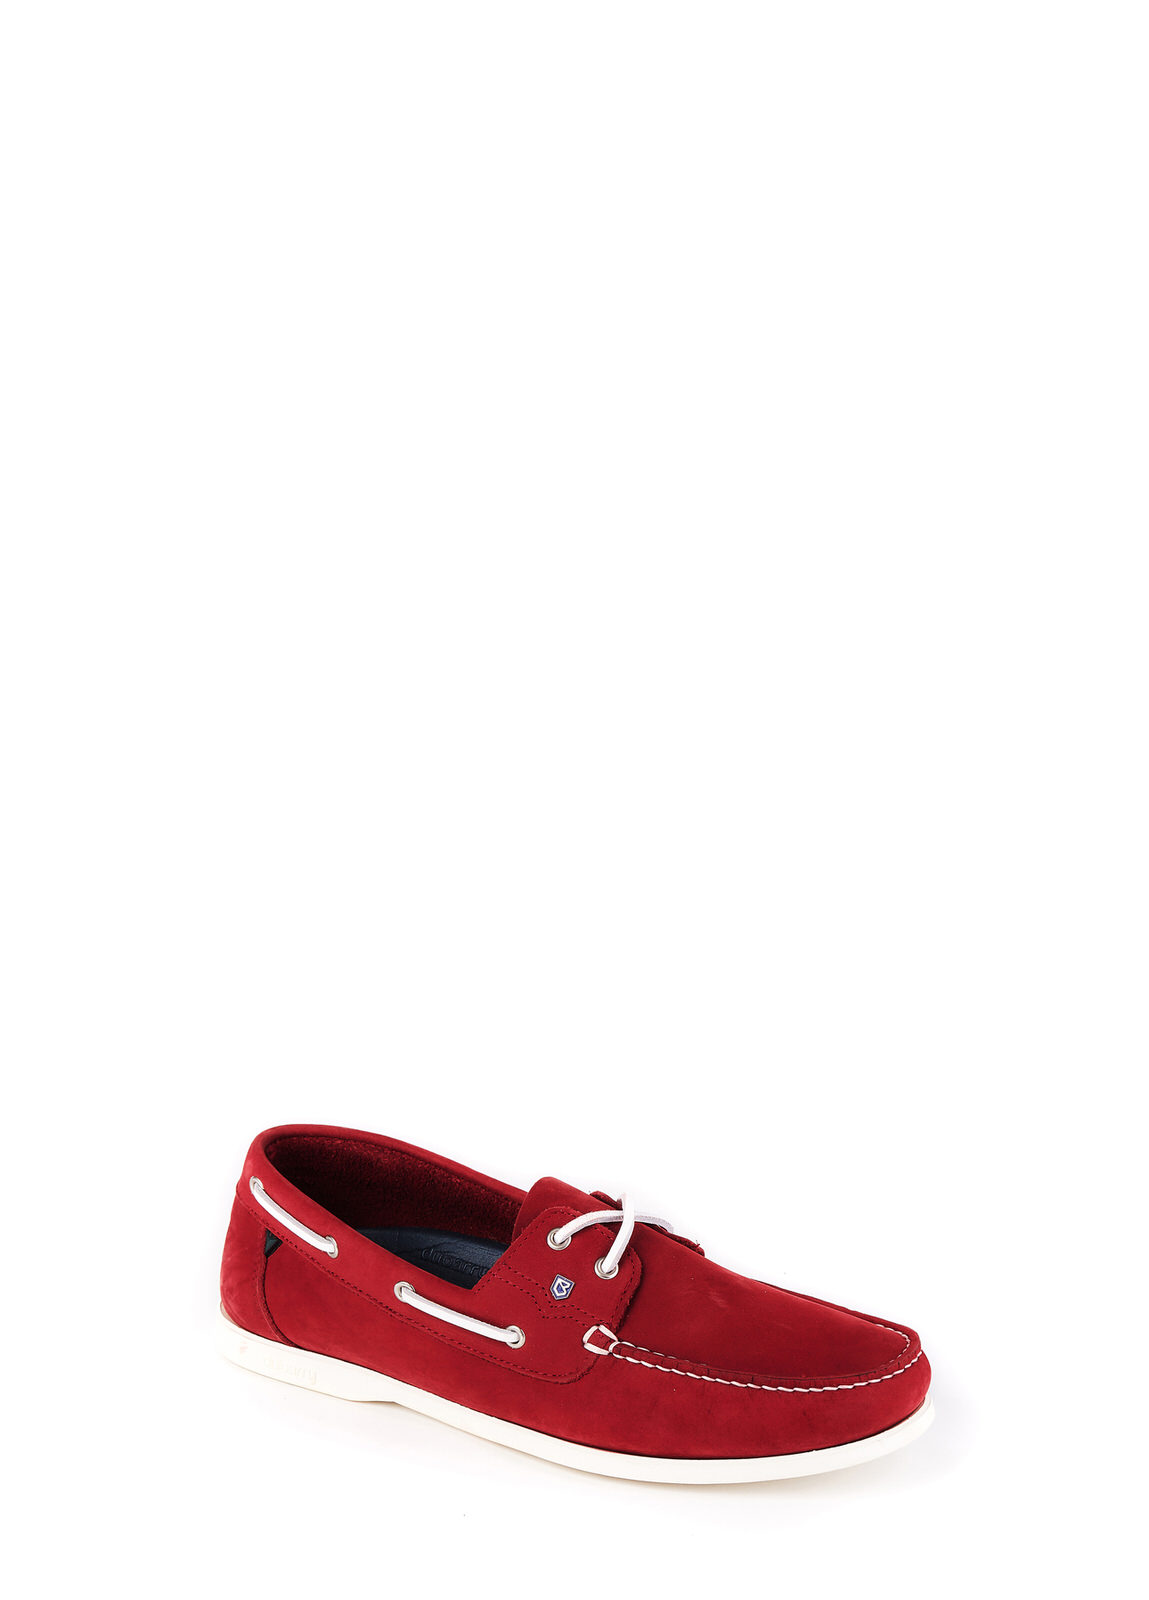 Dubarry_Port Moccasin - Ruby Red_Image_1